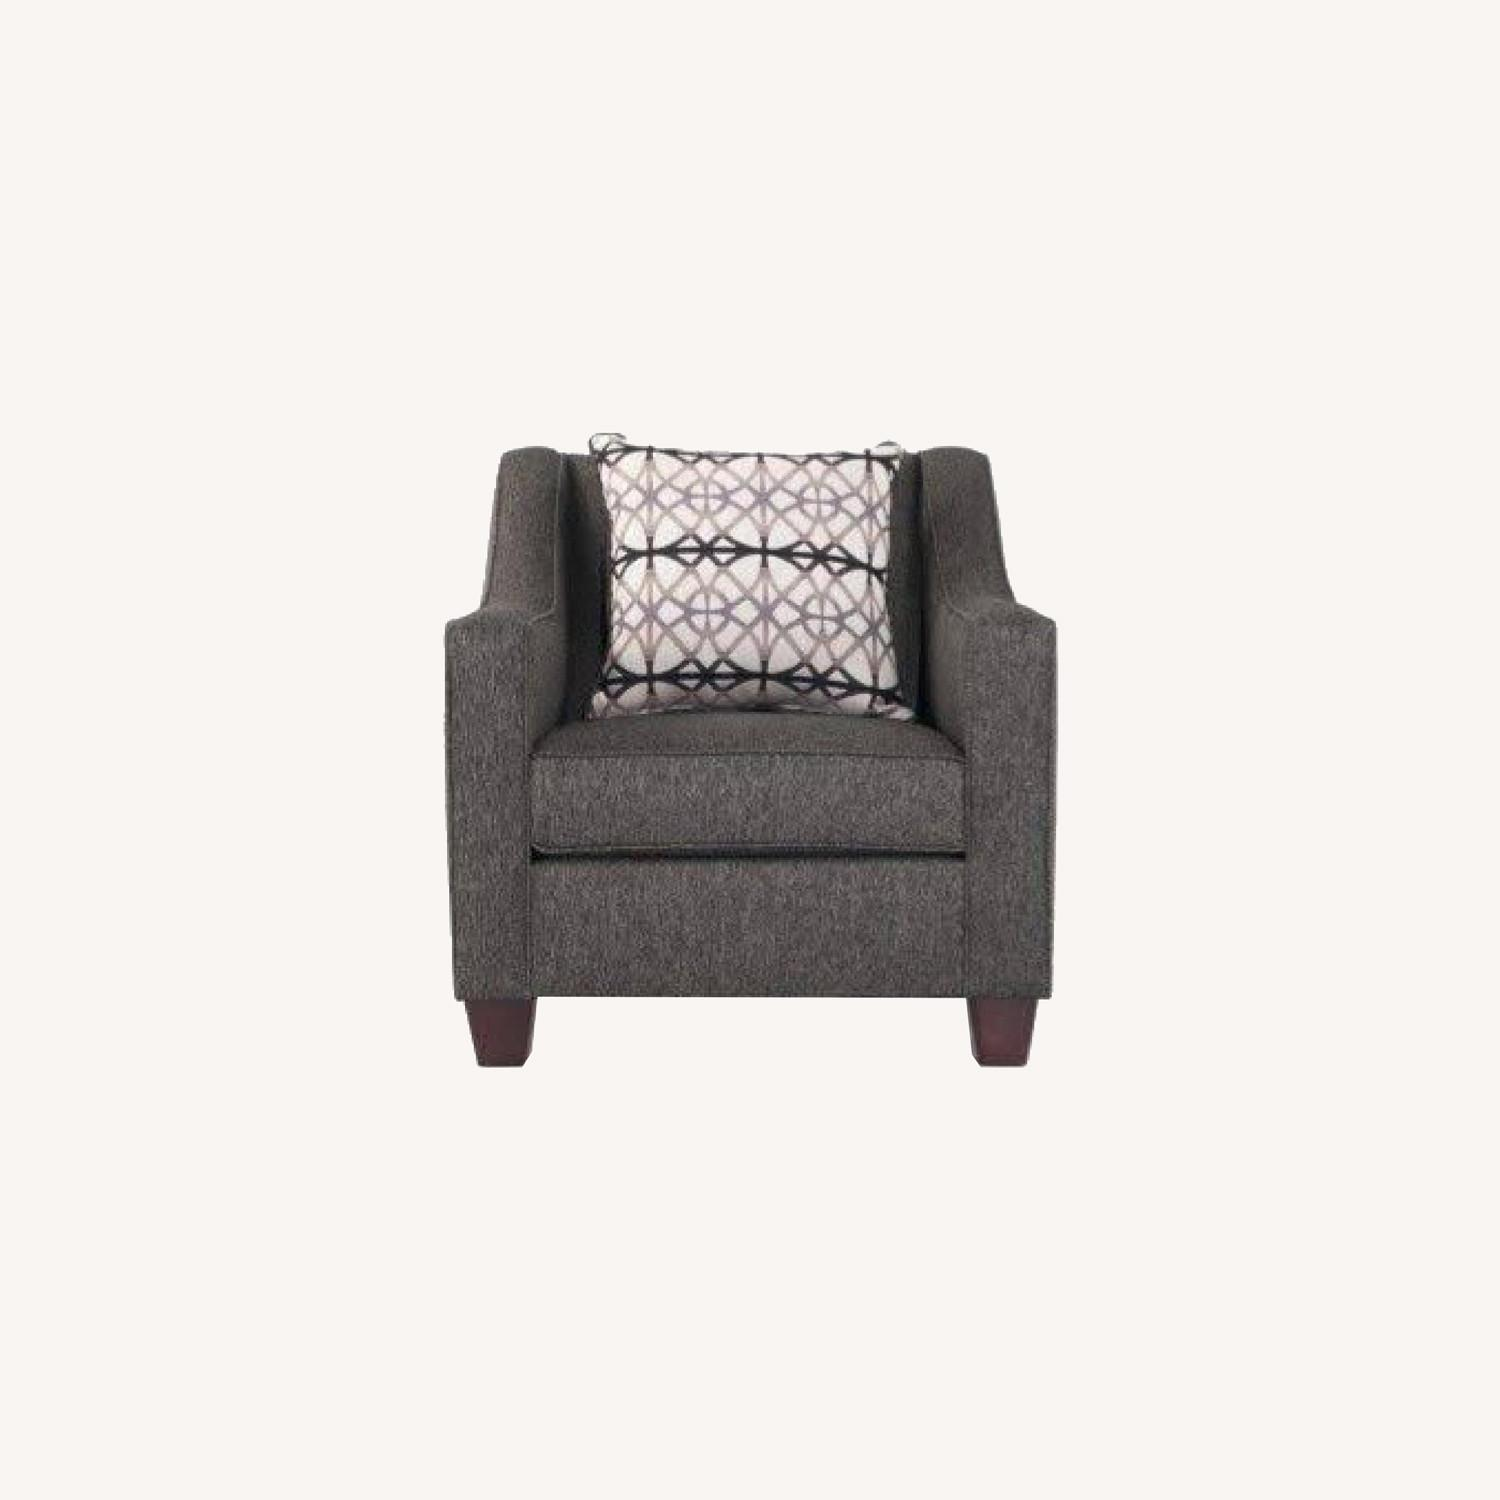 Bobs Discount Caleb Stoked Ash Armchair - image-0